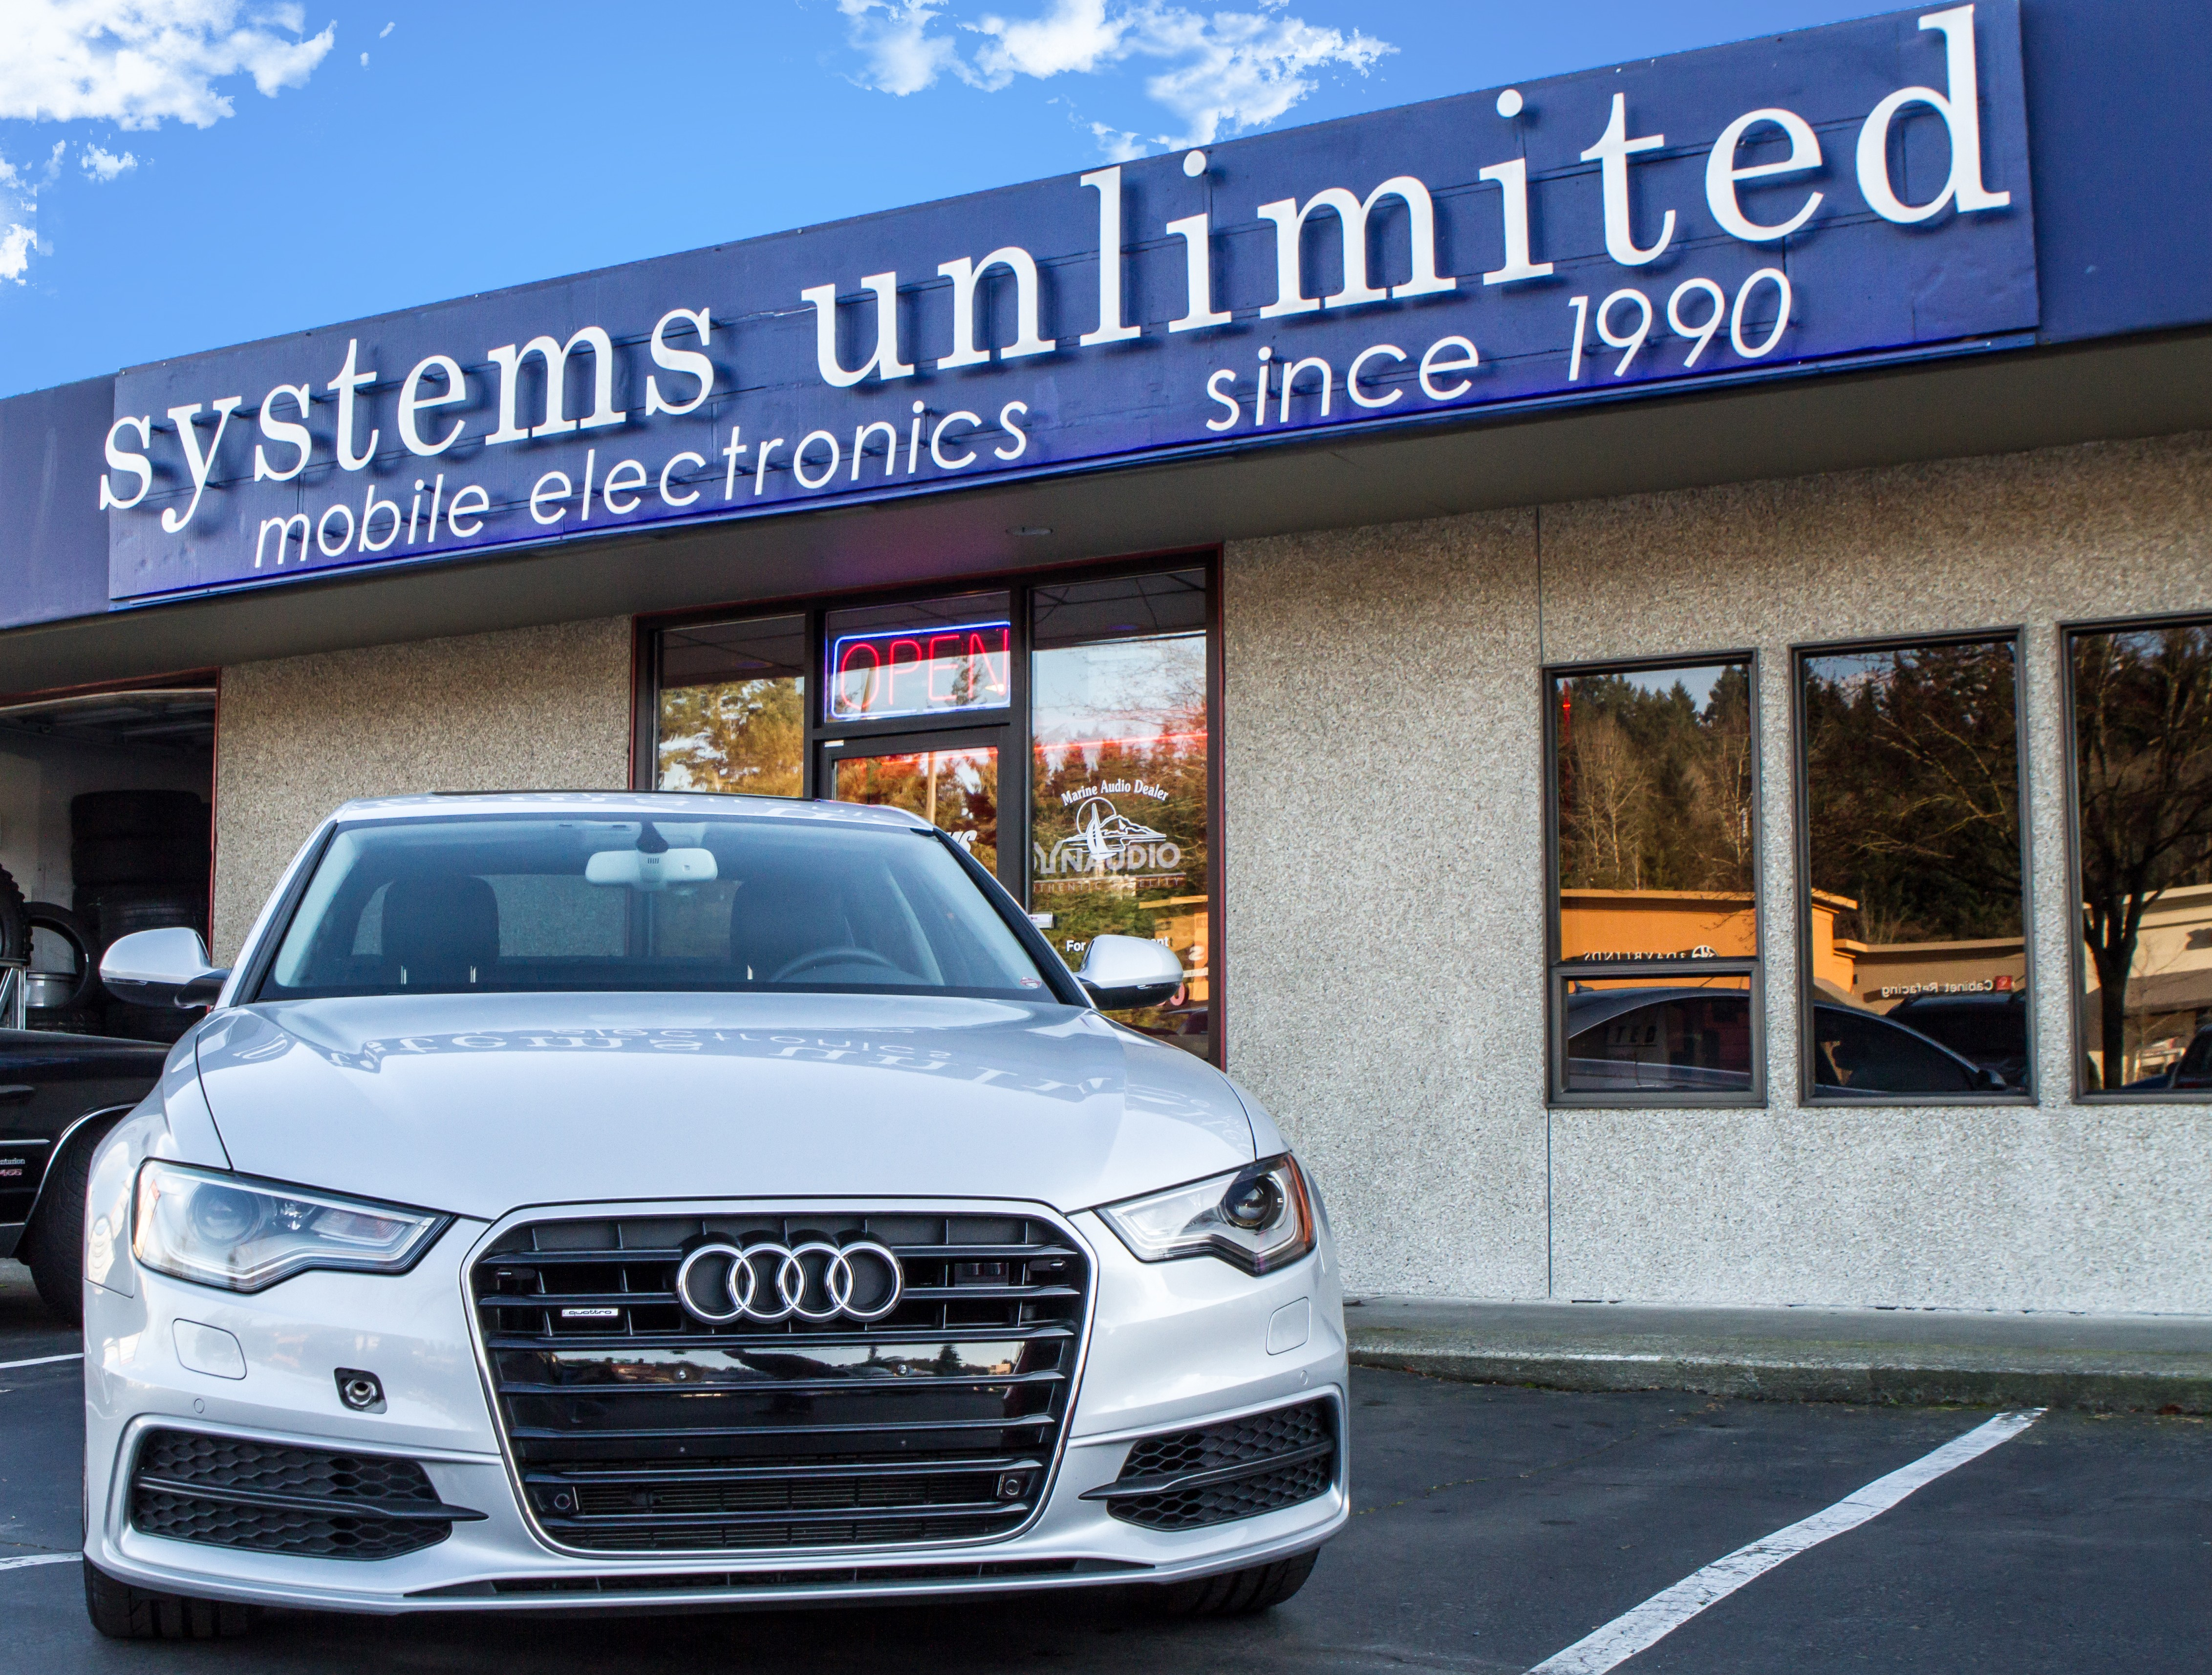 Audi A6 Prestige Systems Unlimited